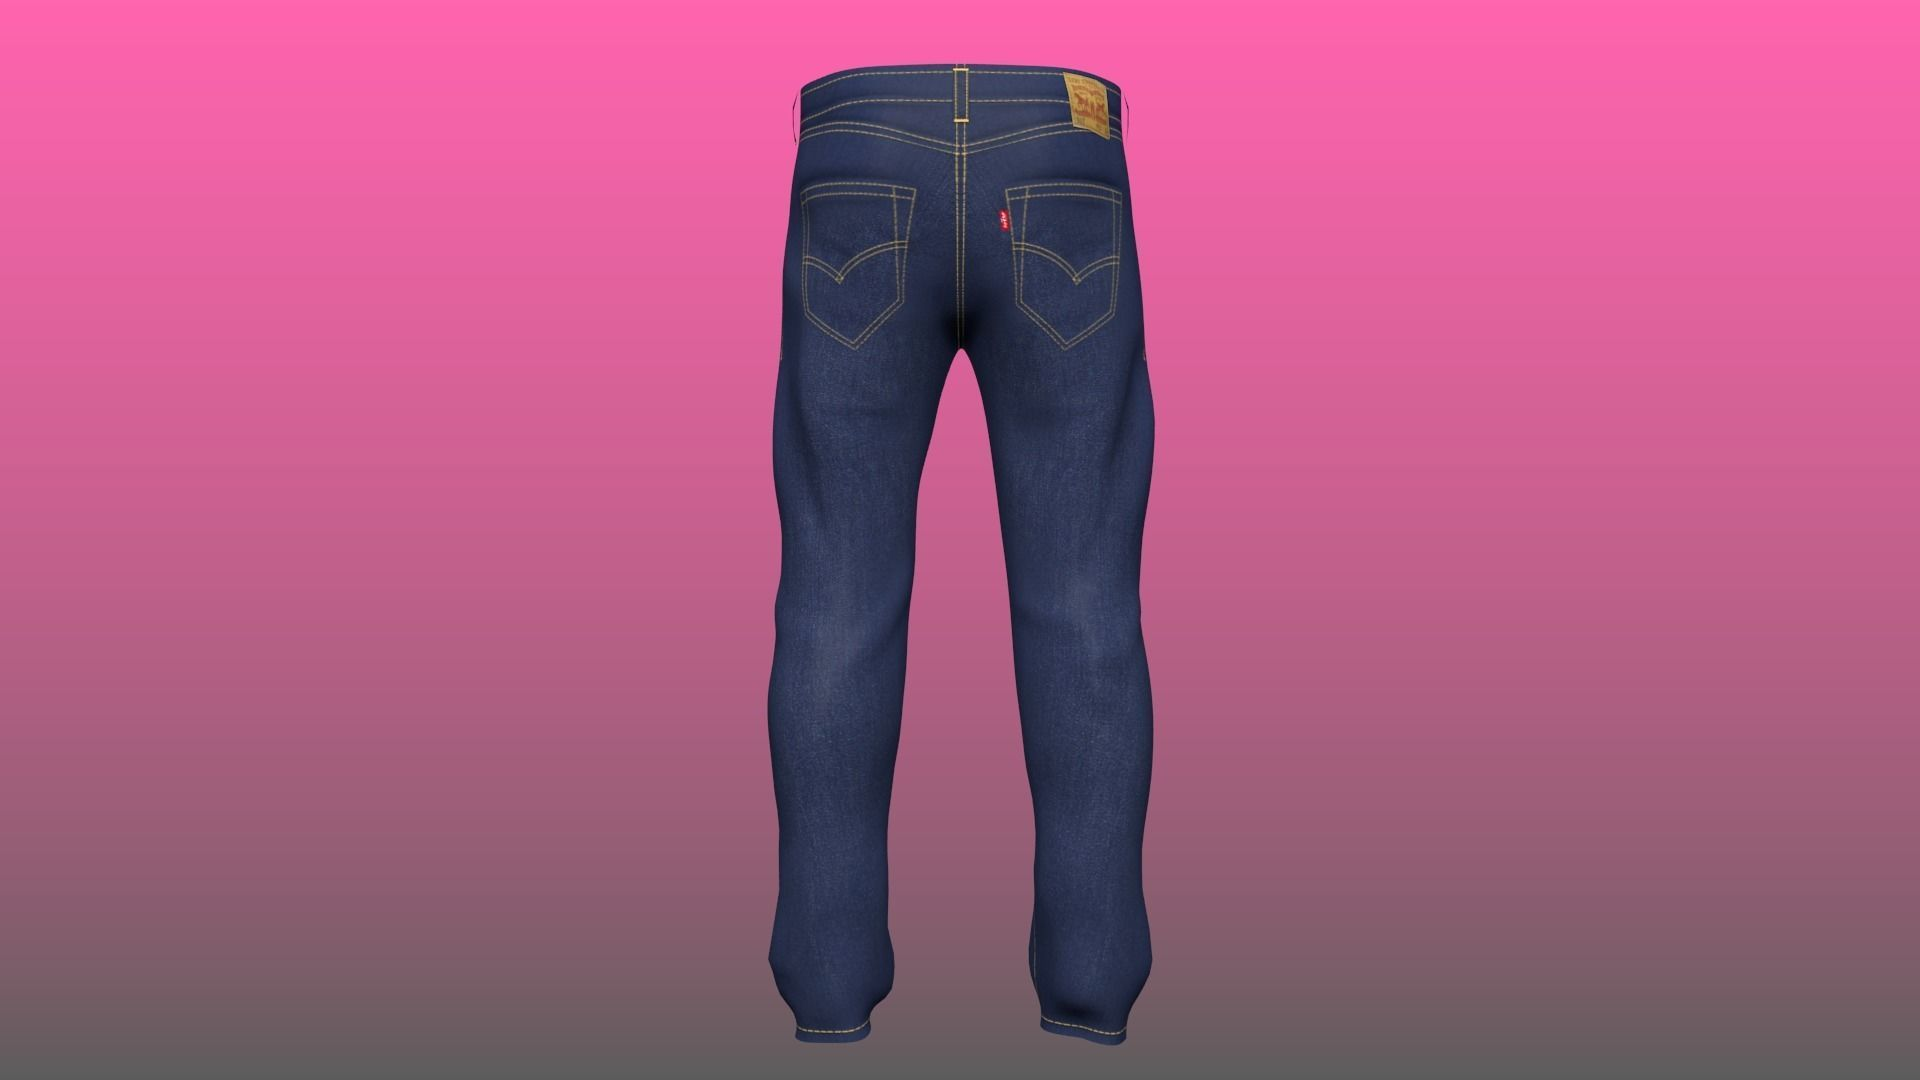 4a2970dc963 Levis Jeans | Levi S Is Getting Ready To Rejoin The Stock Market ...